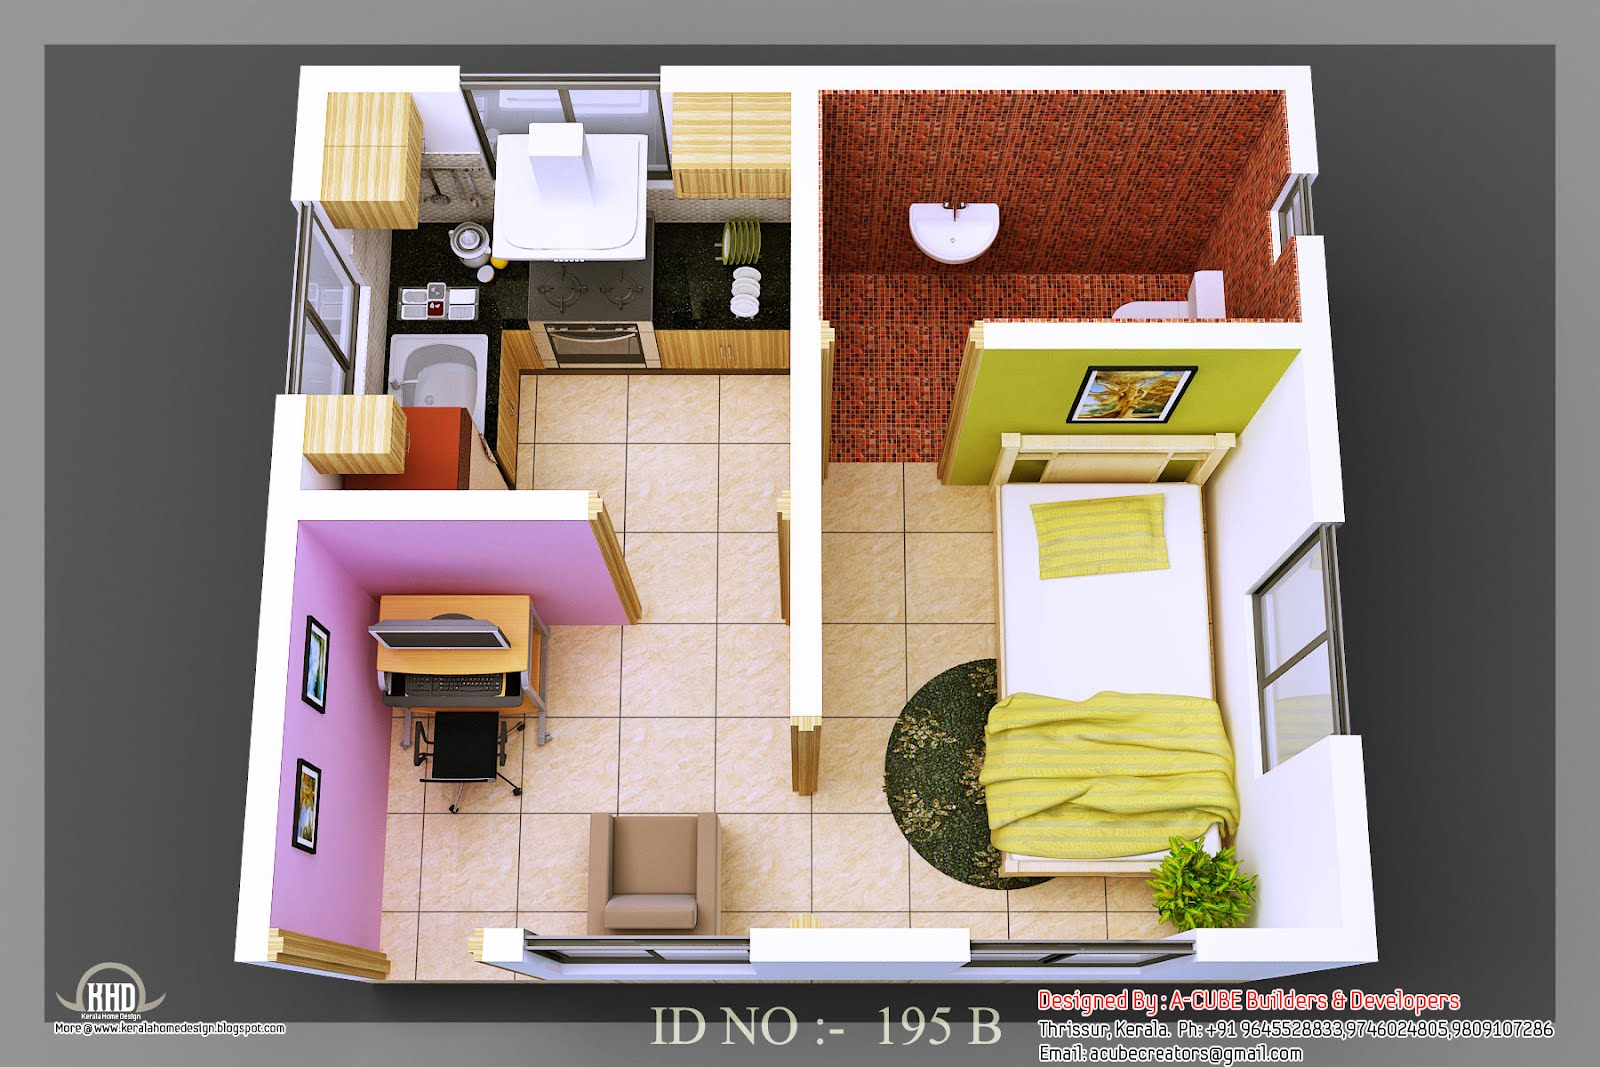 3d isometric views of small house plans home appliance for House plan ideas